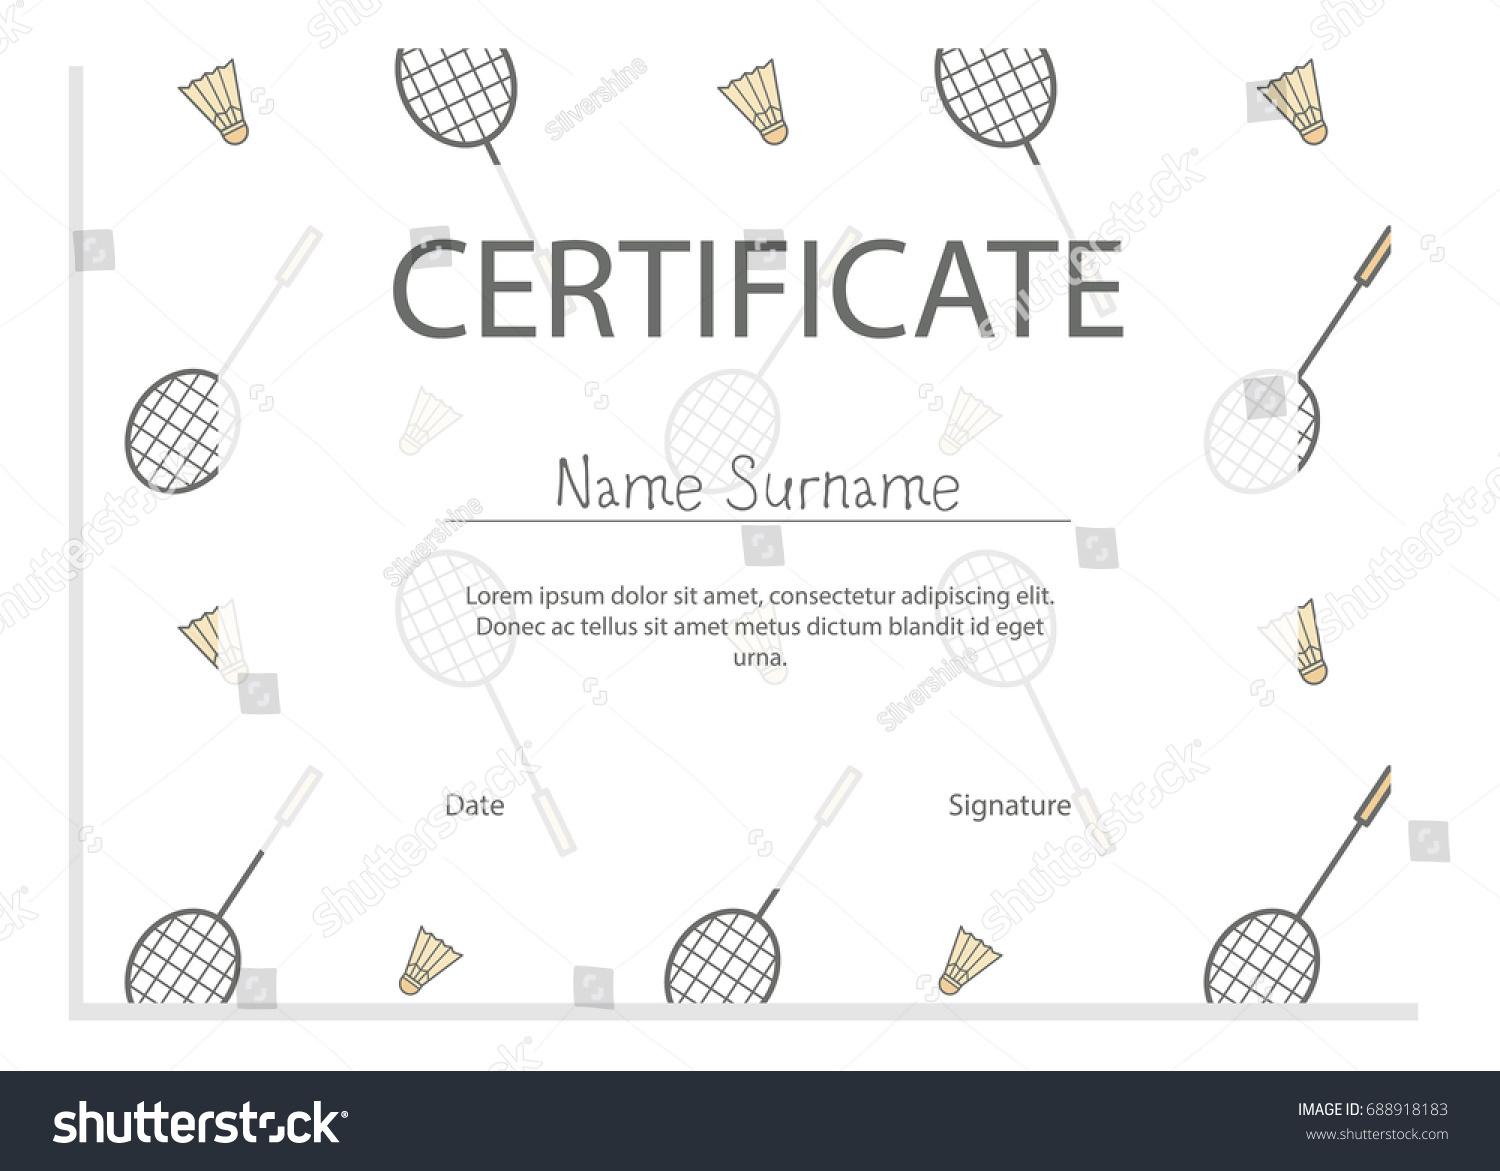 Sport certificate badminton pattern stock vector 688918183 sport certificate with badminton pattern yadclub Image collections